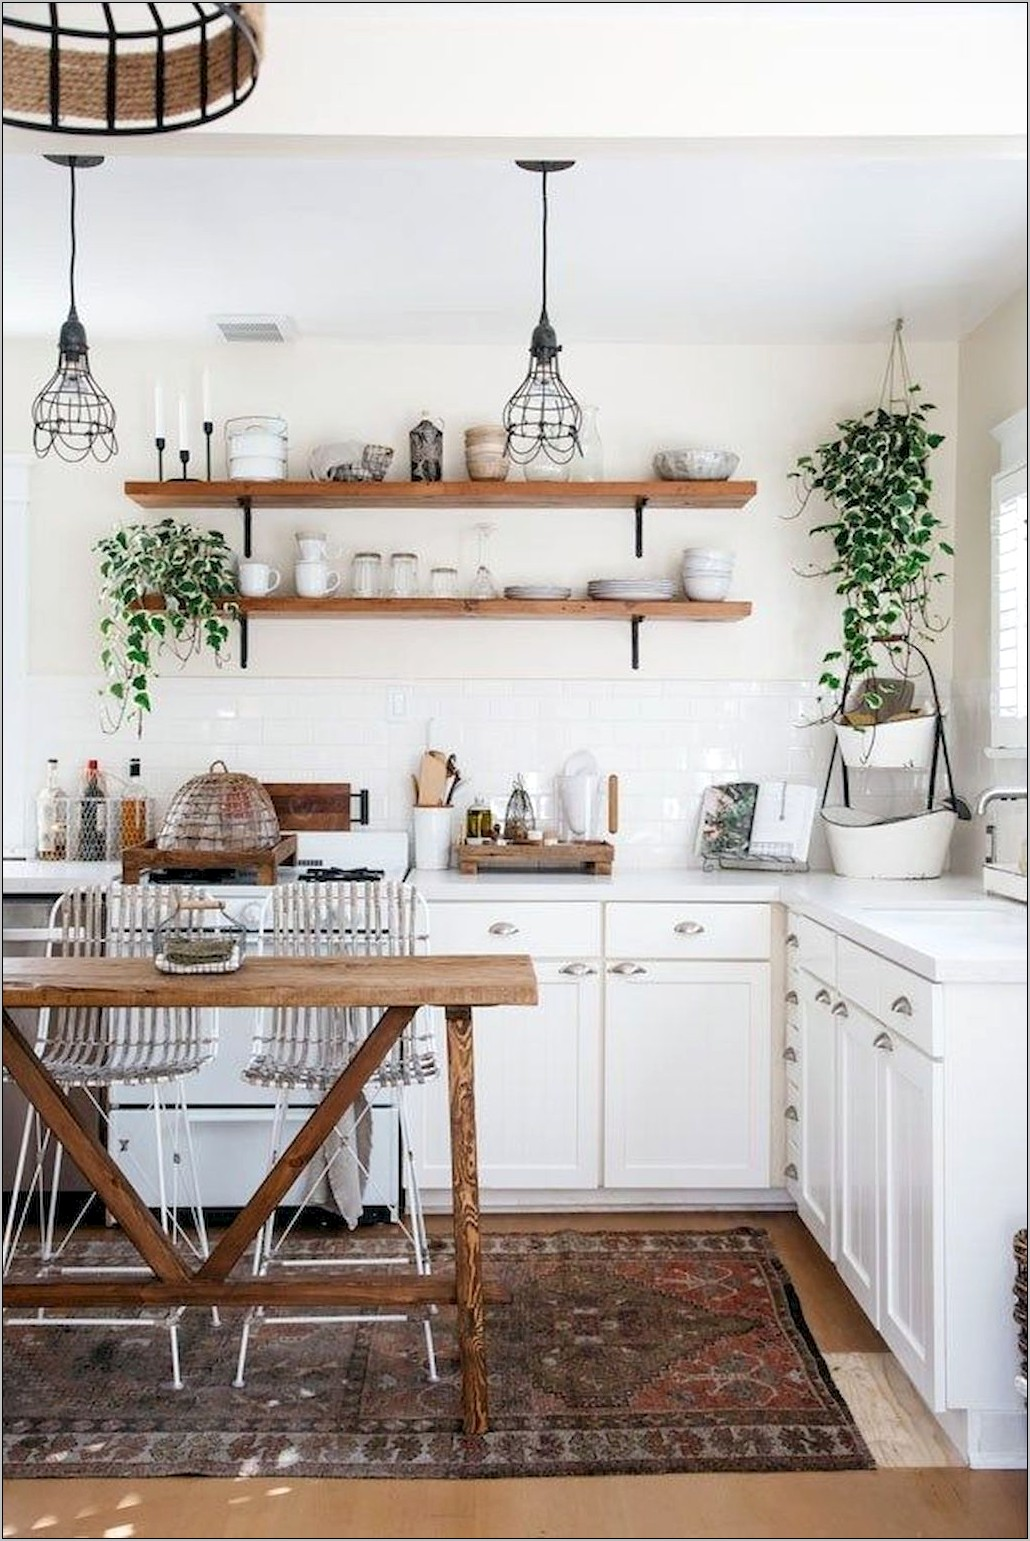 Red French Country Decor Kitchen